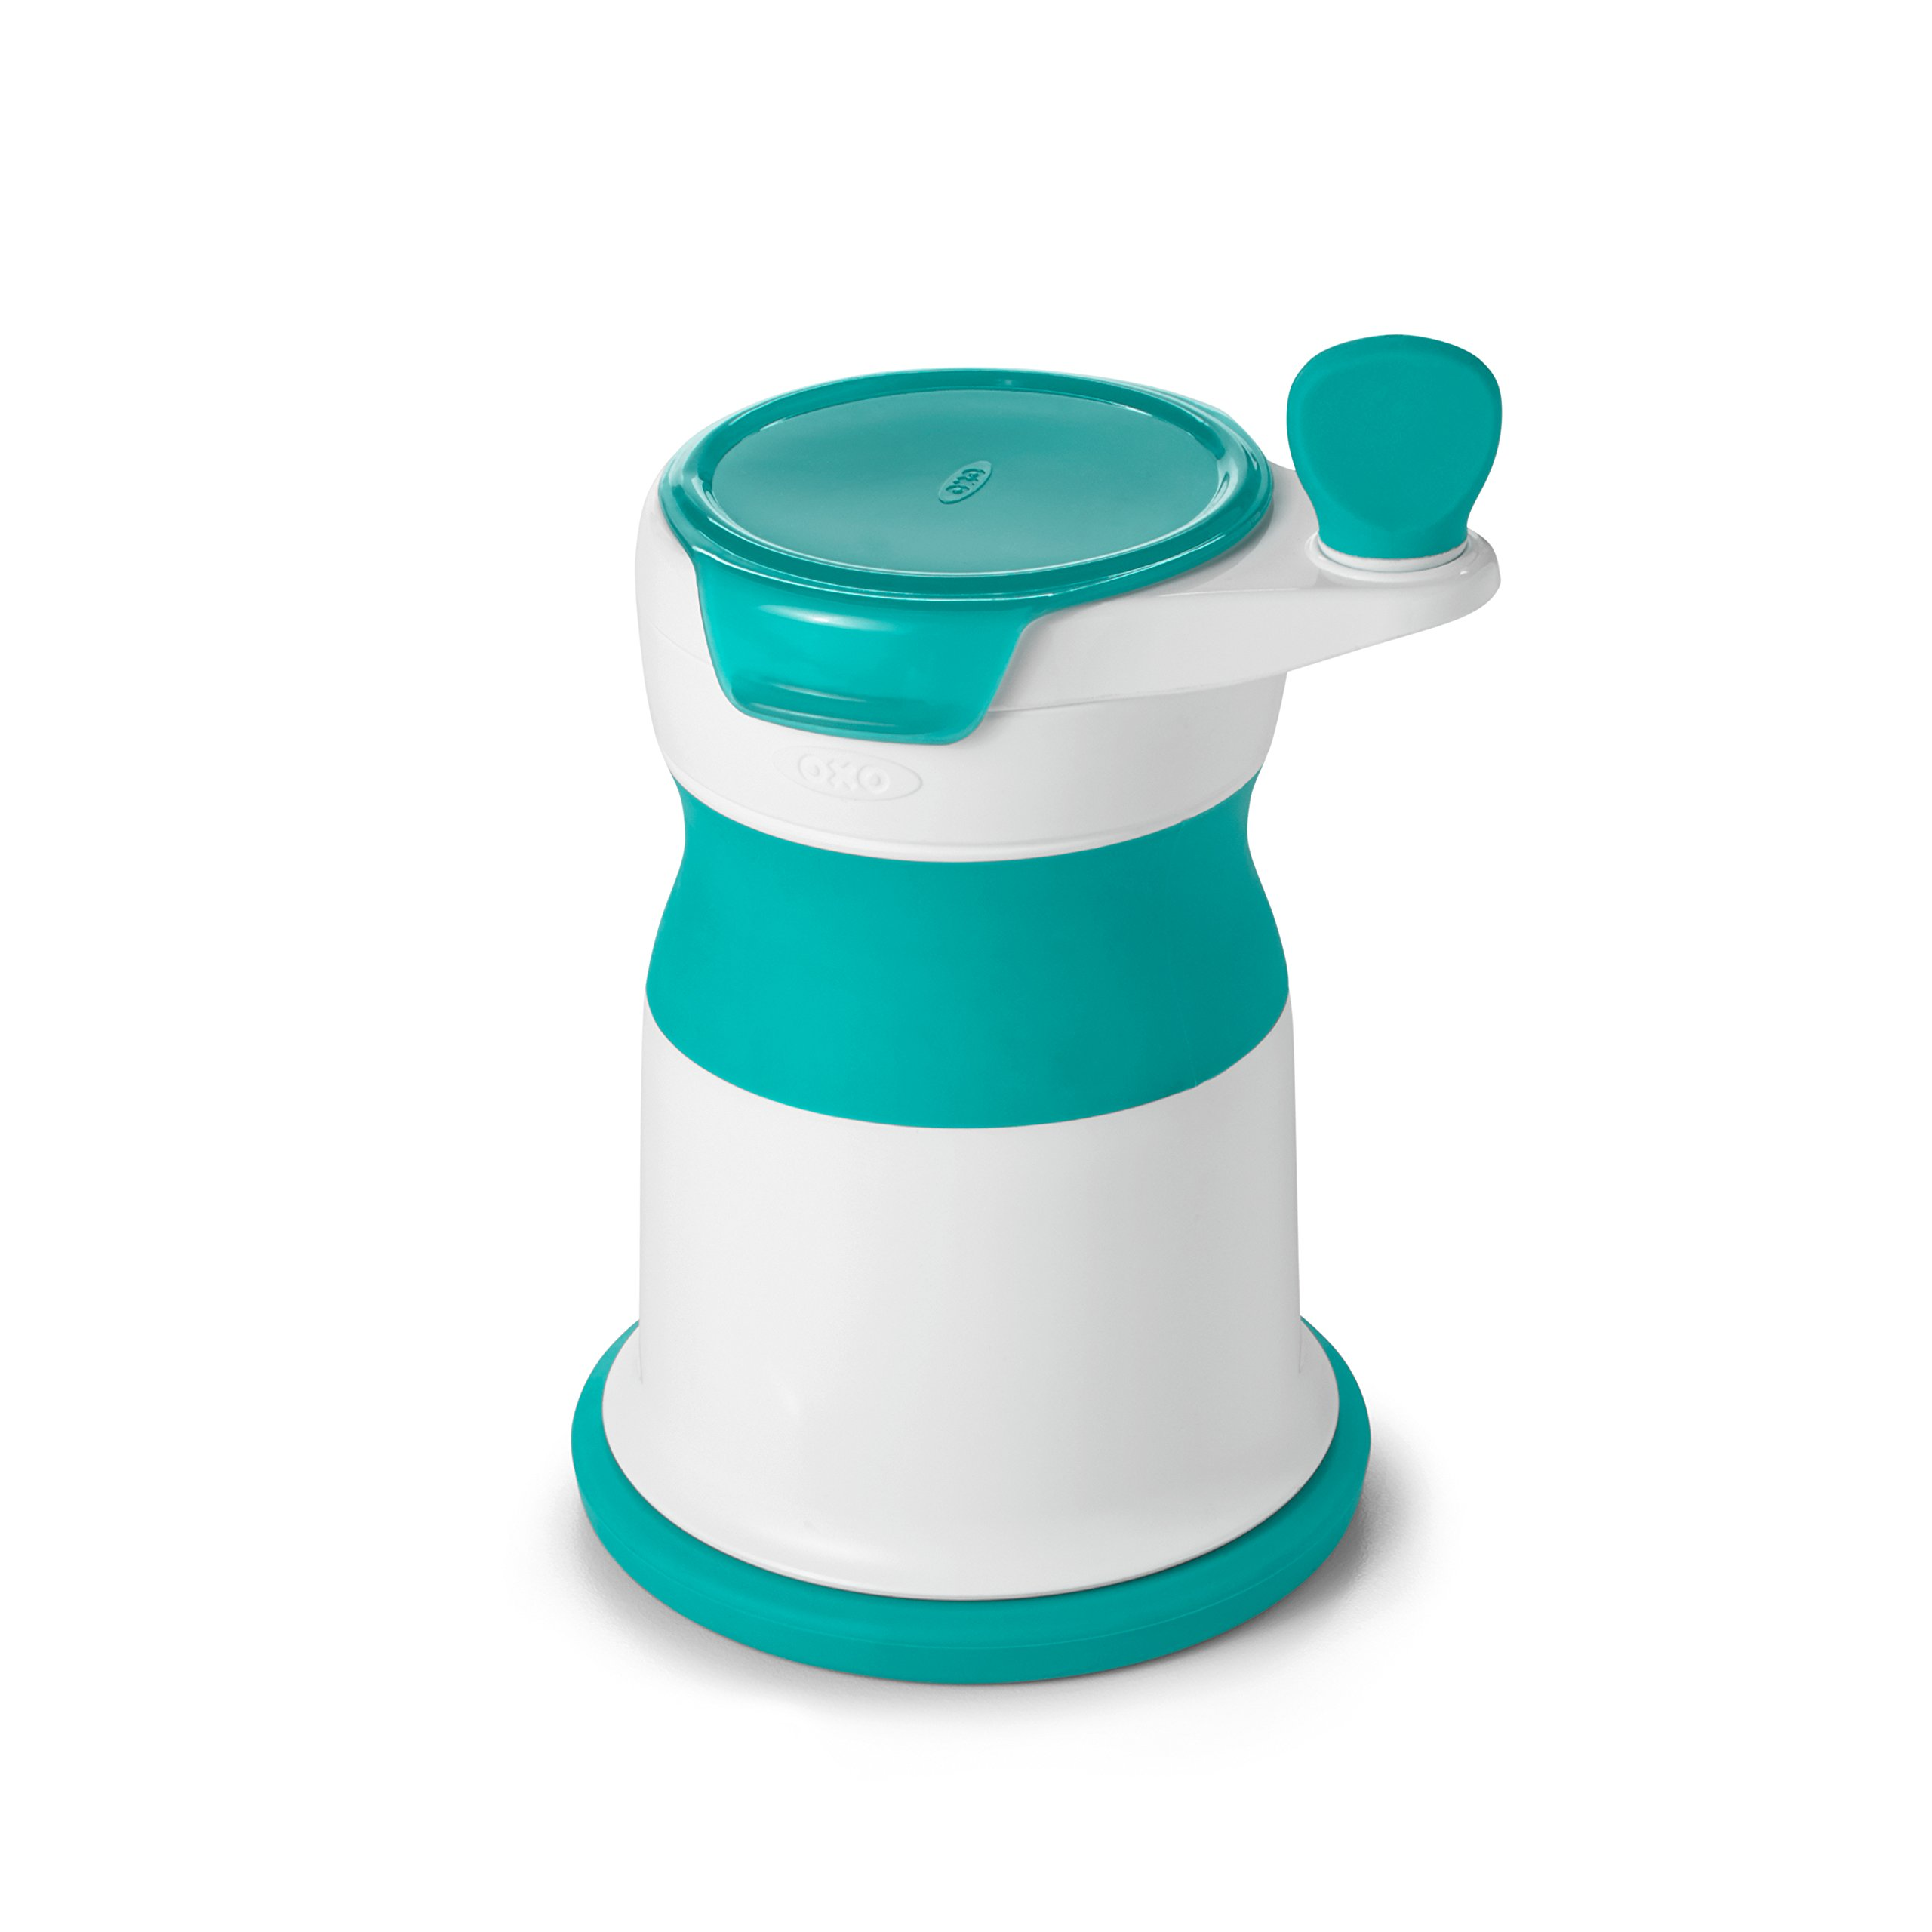 OXO Tot Mash Maker Baby Food Mill, Teal by OXO Tot (Image #1)